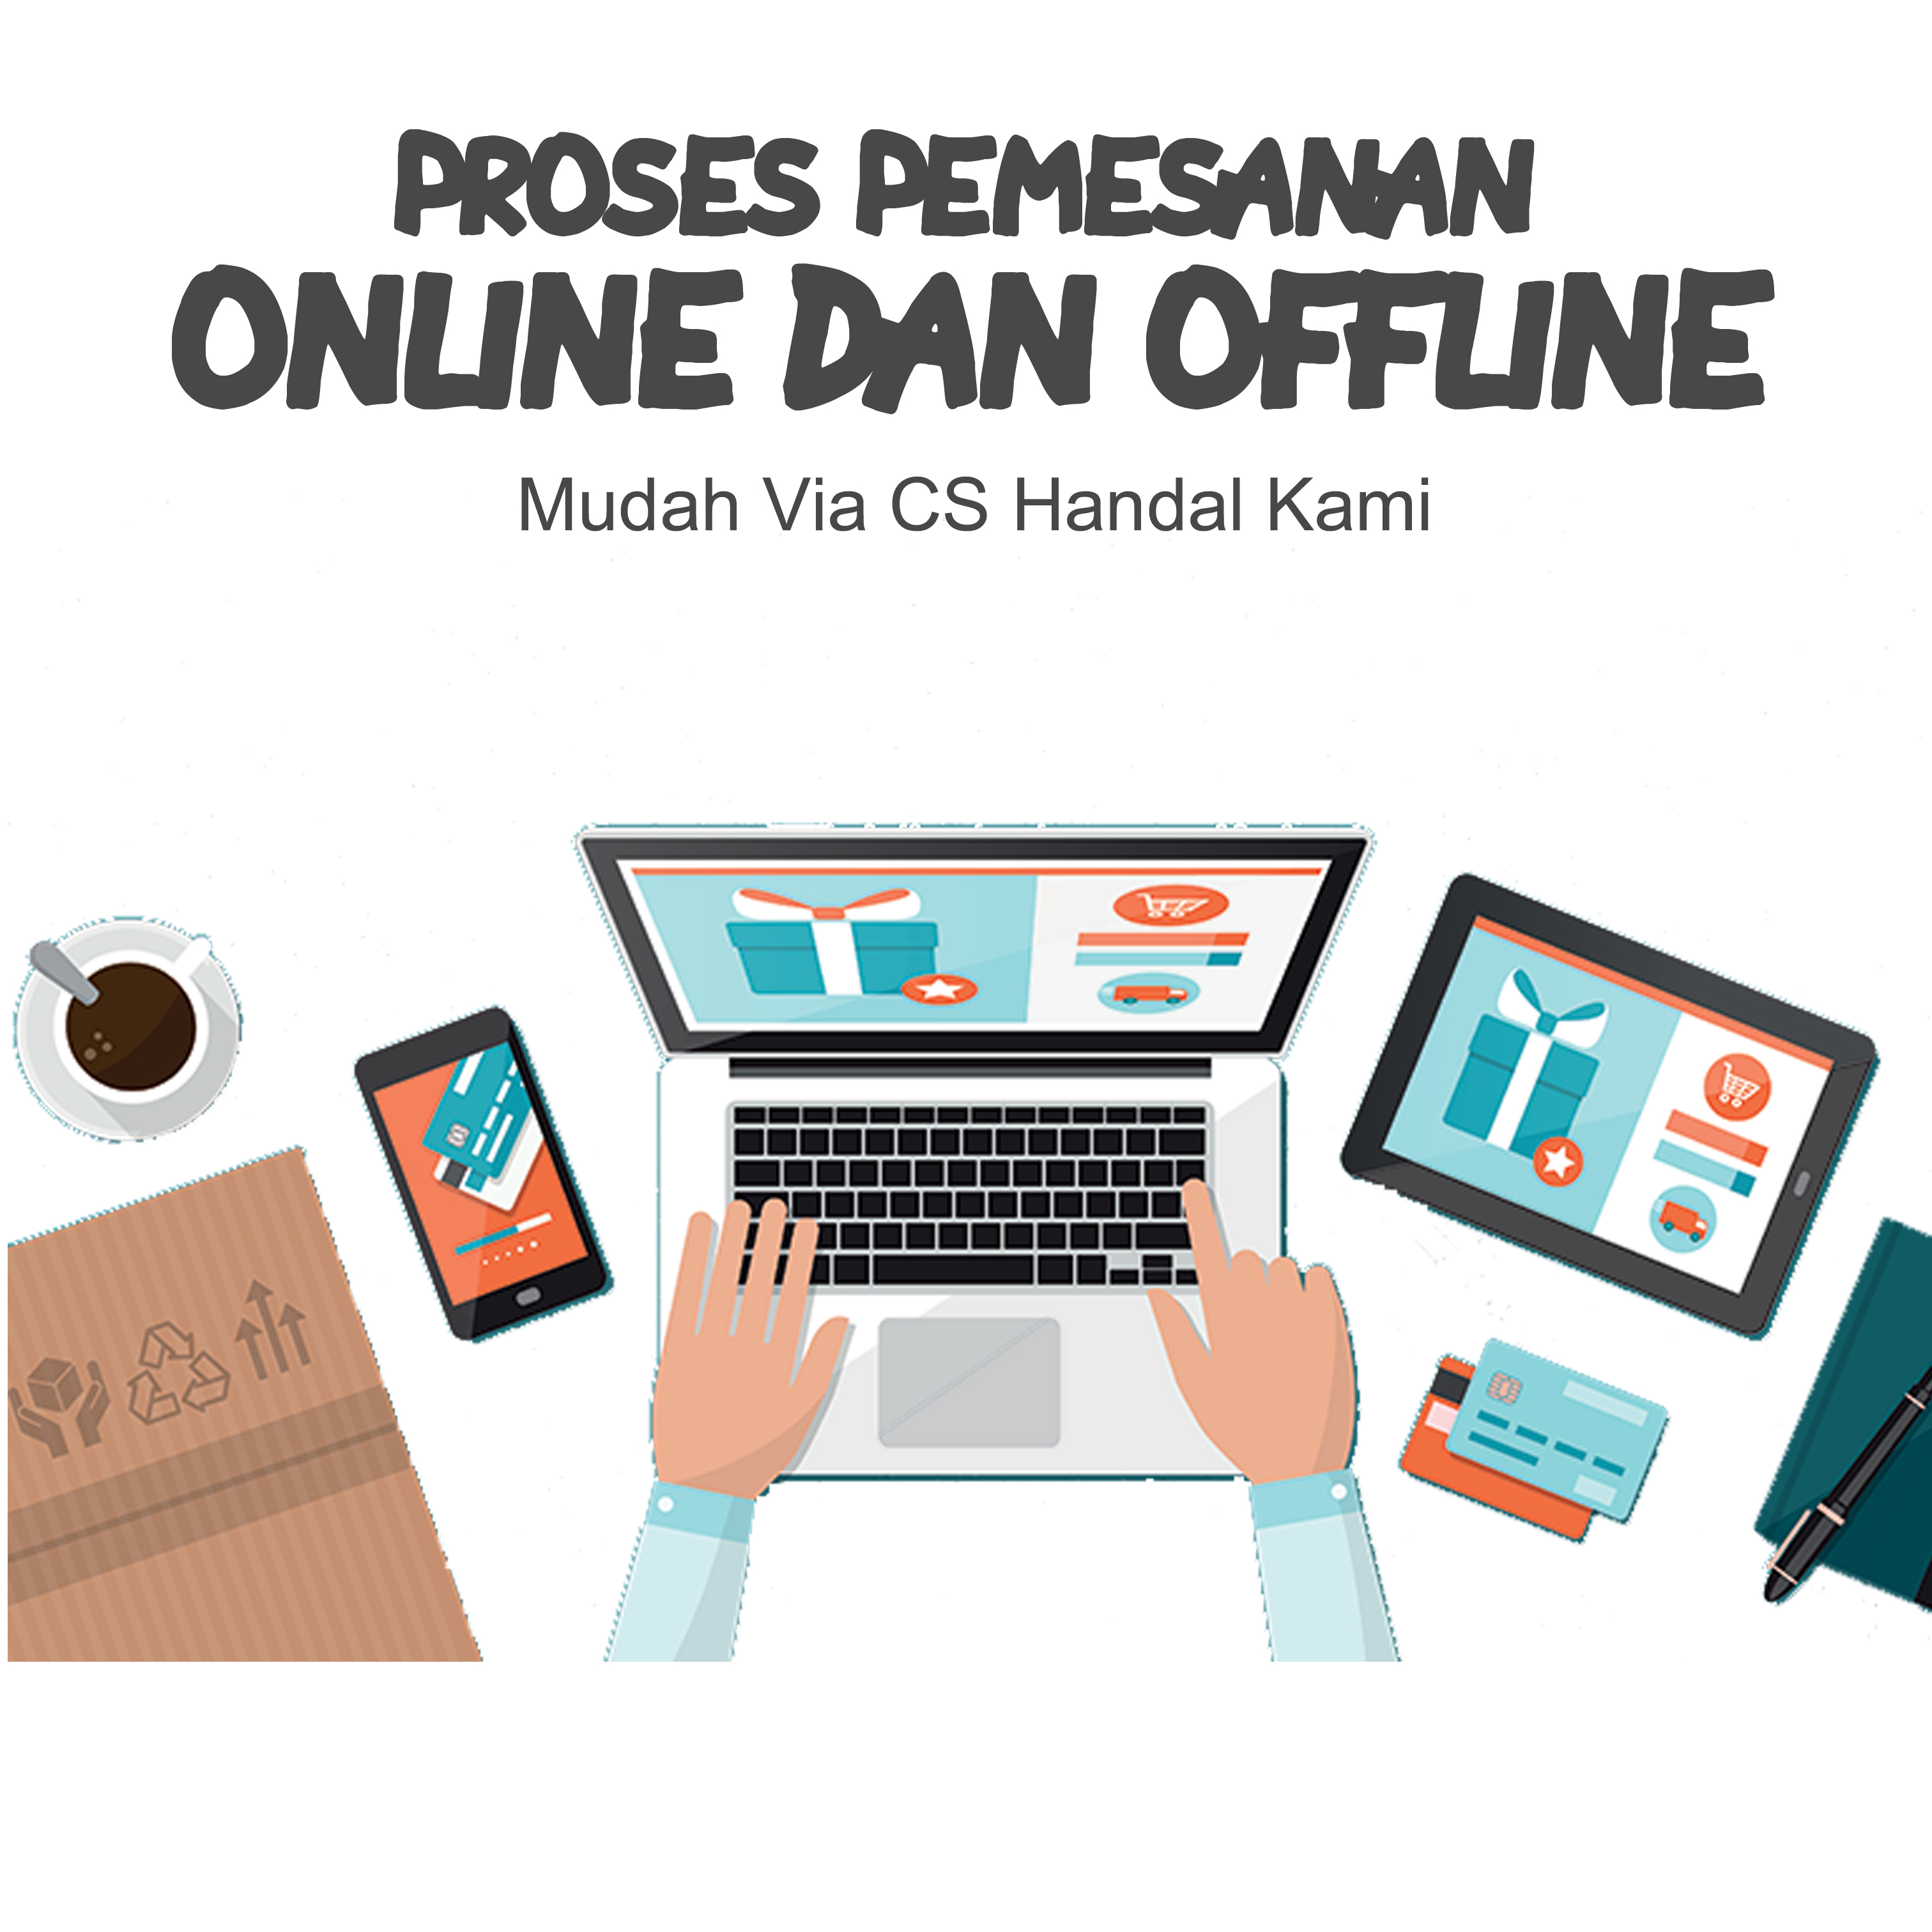 Design-Promoted-X1-Post Proses Pemesanan Mudah (Online & Offiline) greensproduction